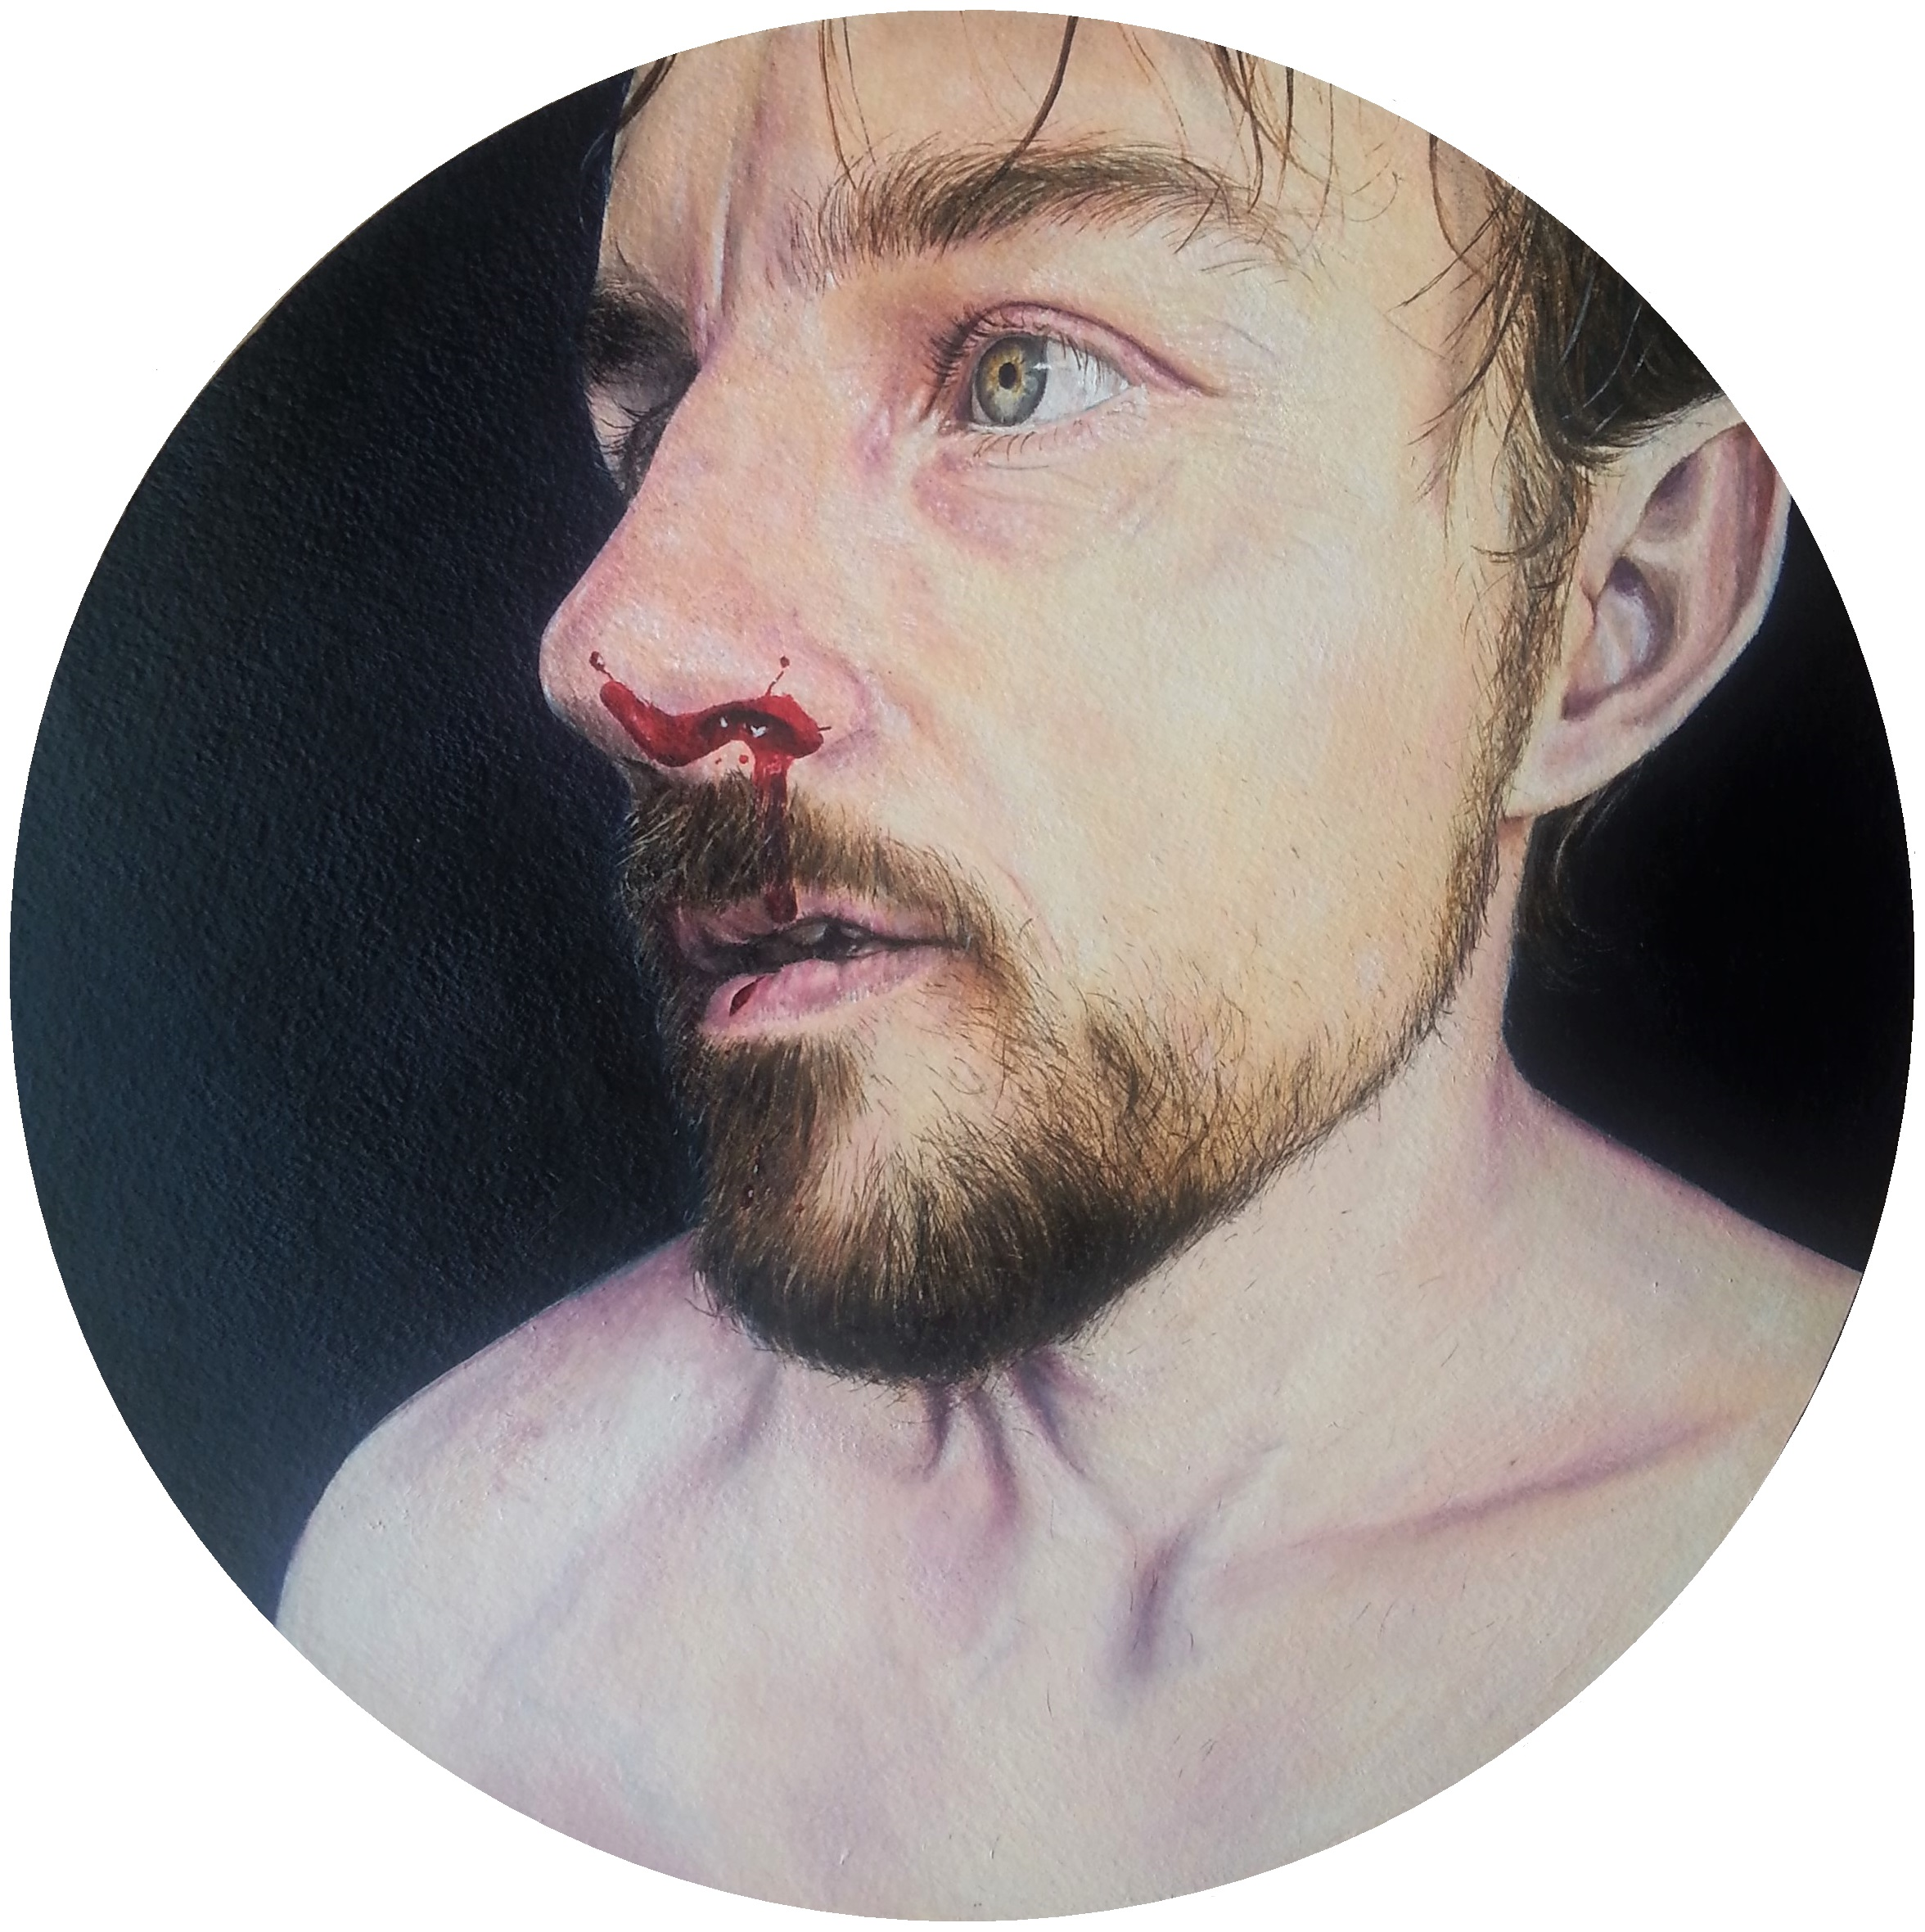 Fight, oil on paper painting by Lee Devonish, 2016. Masculinity and vulnerability.